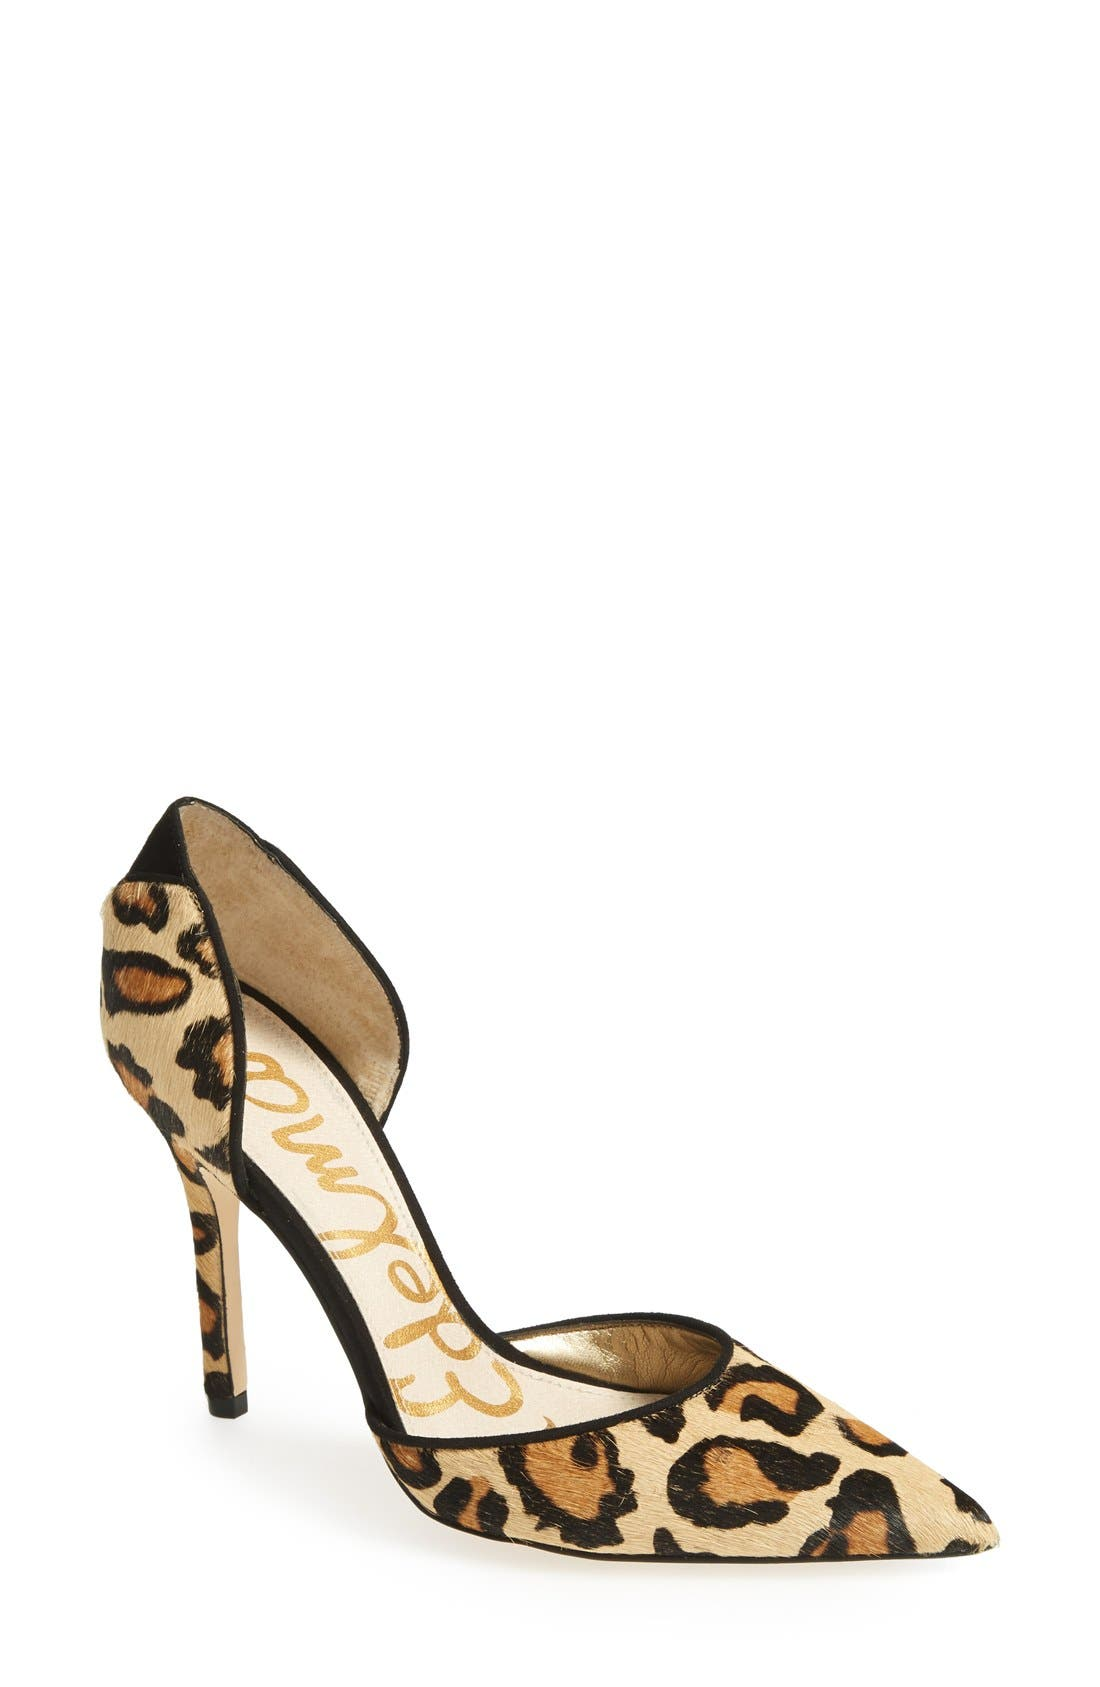 Main Image - Sam Edelman 'Delilah' Calf Hair d'Orsay Pump (Women)